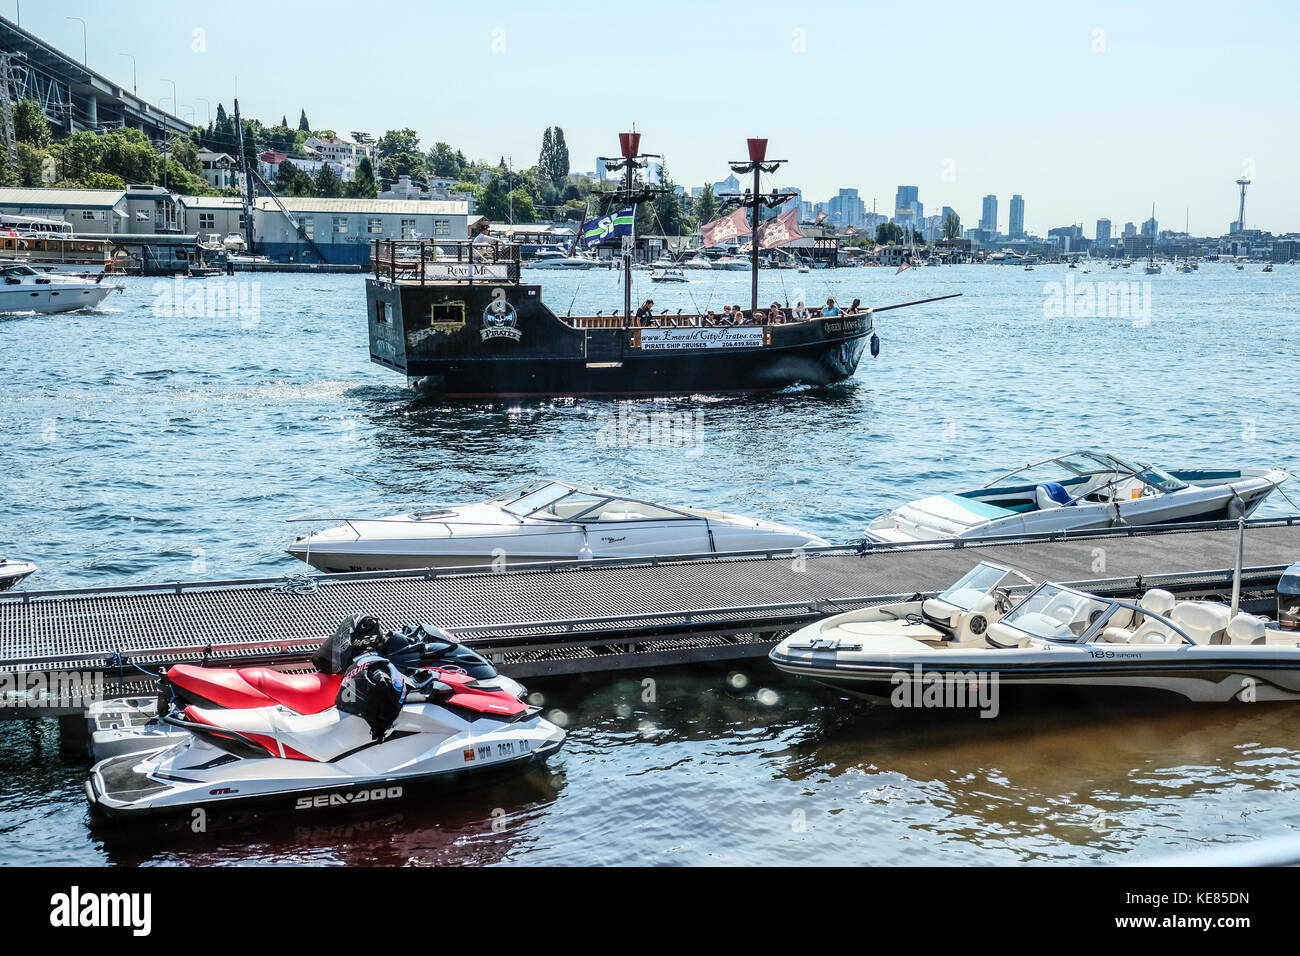 The Pirate boat touring Seattle's Lake Union in the summer - Stock Image